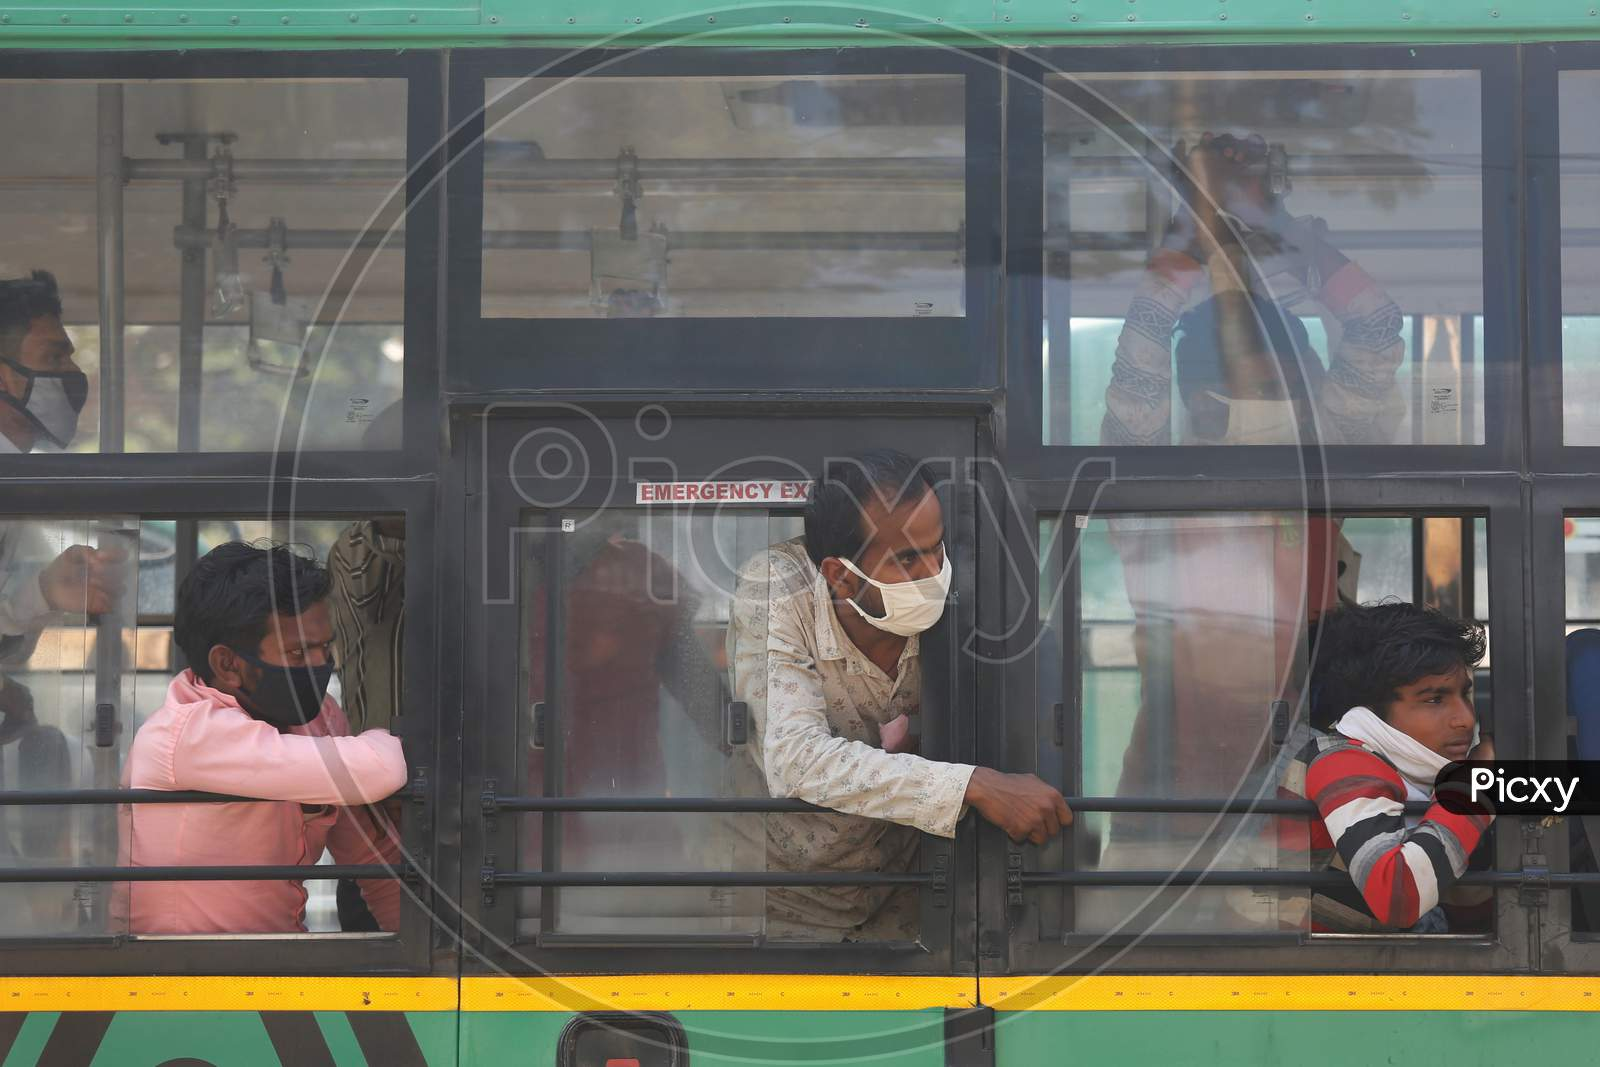 Migrant Workers Sit Inside A Bus As They Wait To Alight To Board A Special Train Arranged By The Government To Repatriate Migrant Workers From The Chikkabanavara Junction Railway Station On The Outskirts Of Bangalore, India.